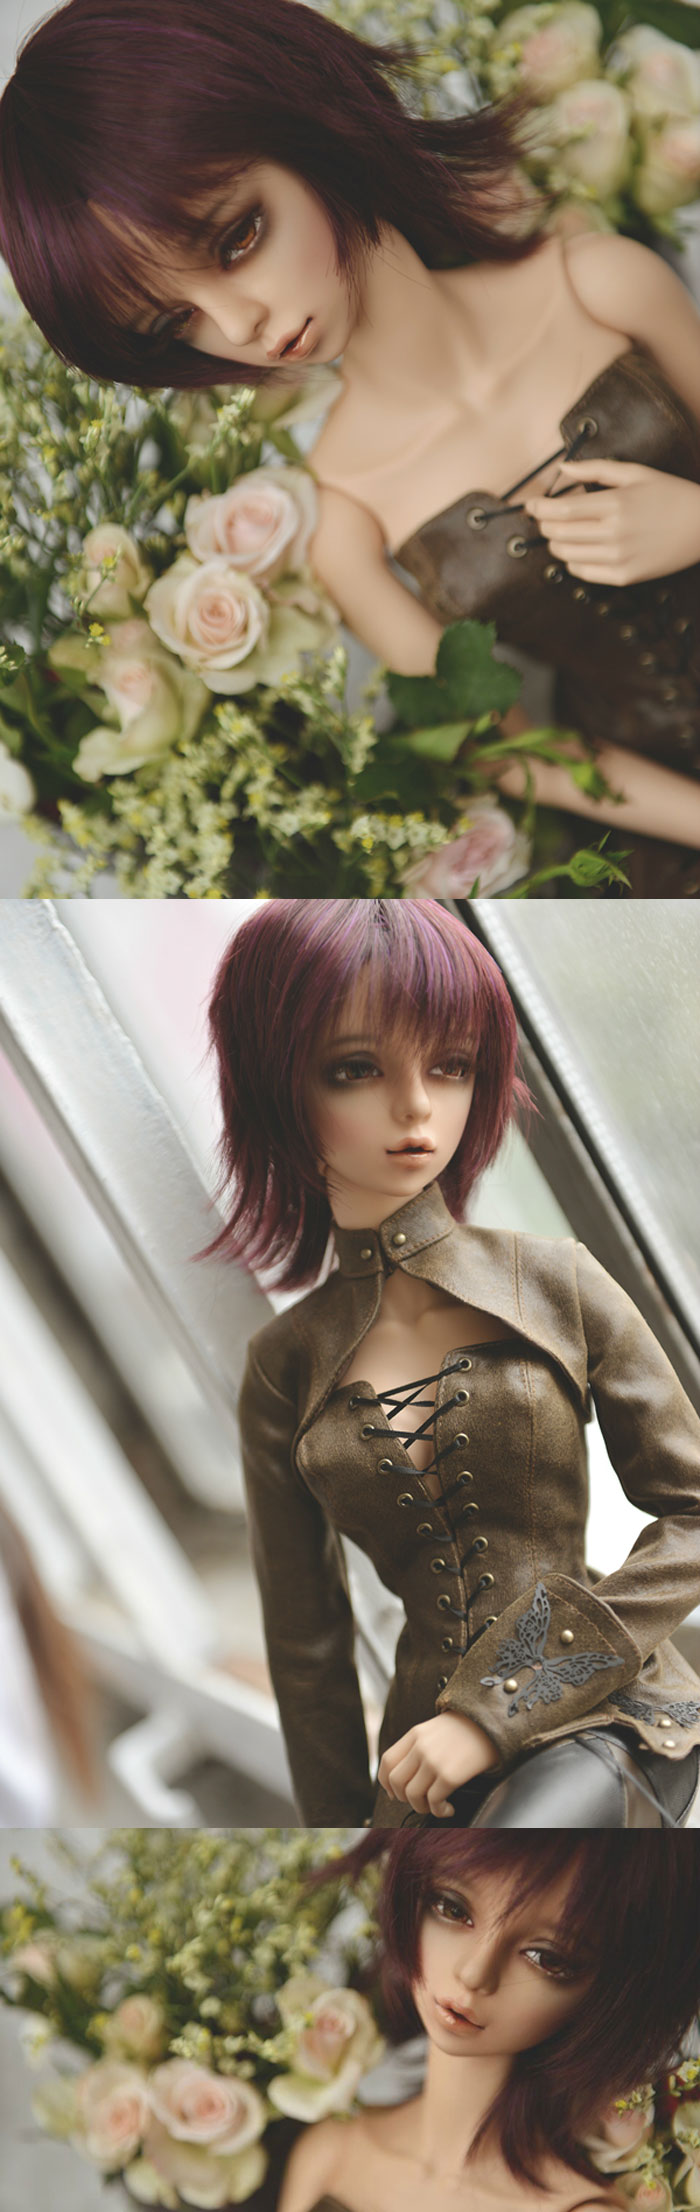 BJD Boy/Girl Wigs Dark Purple Short Hair for SD Size Ball-jointed Doll_SD 8-9in_SD 8-9in_WIG_Ball Jointed Dolls (BJD) company-Legenddoll